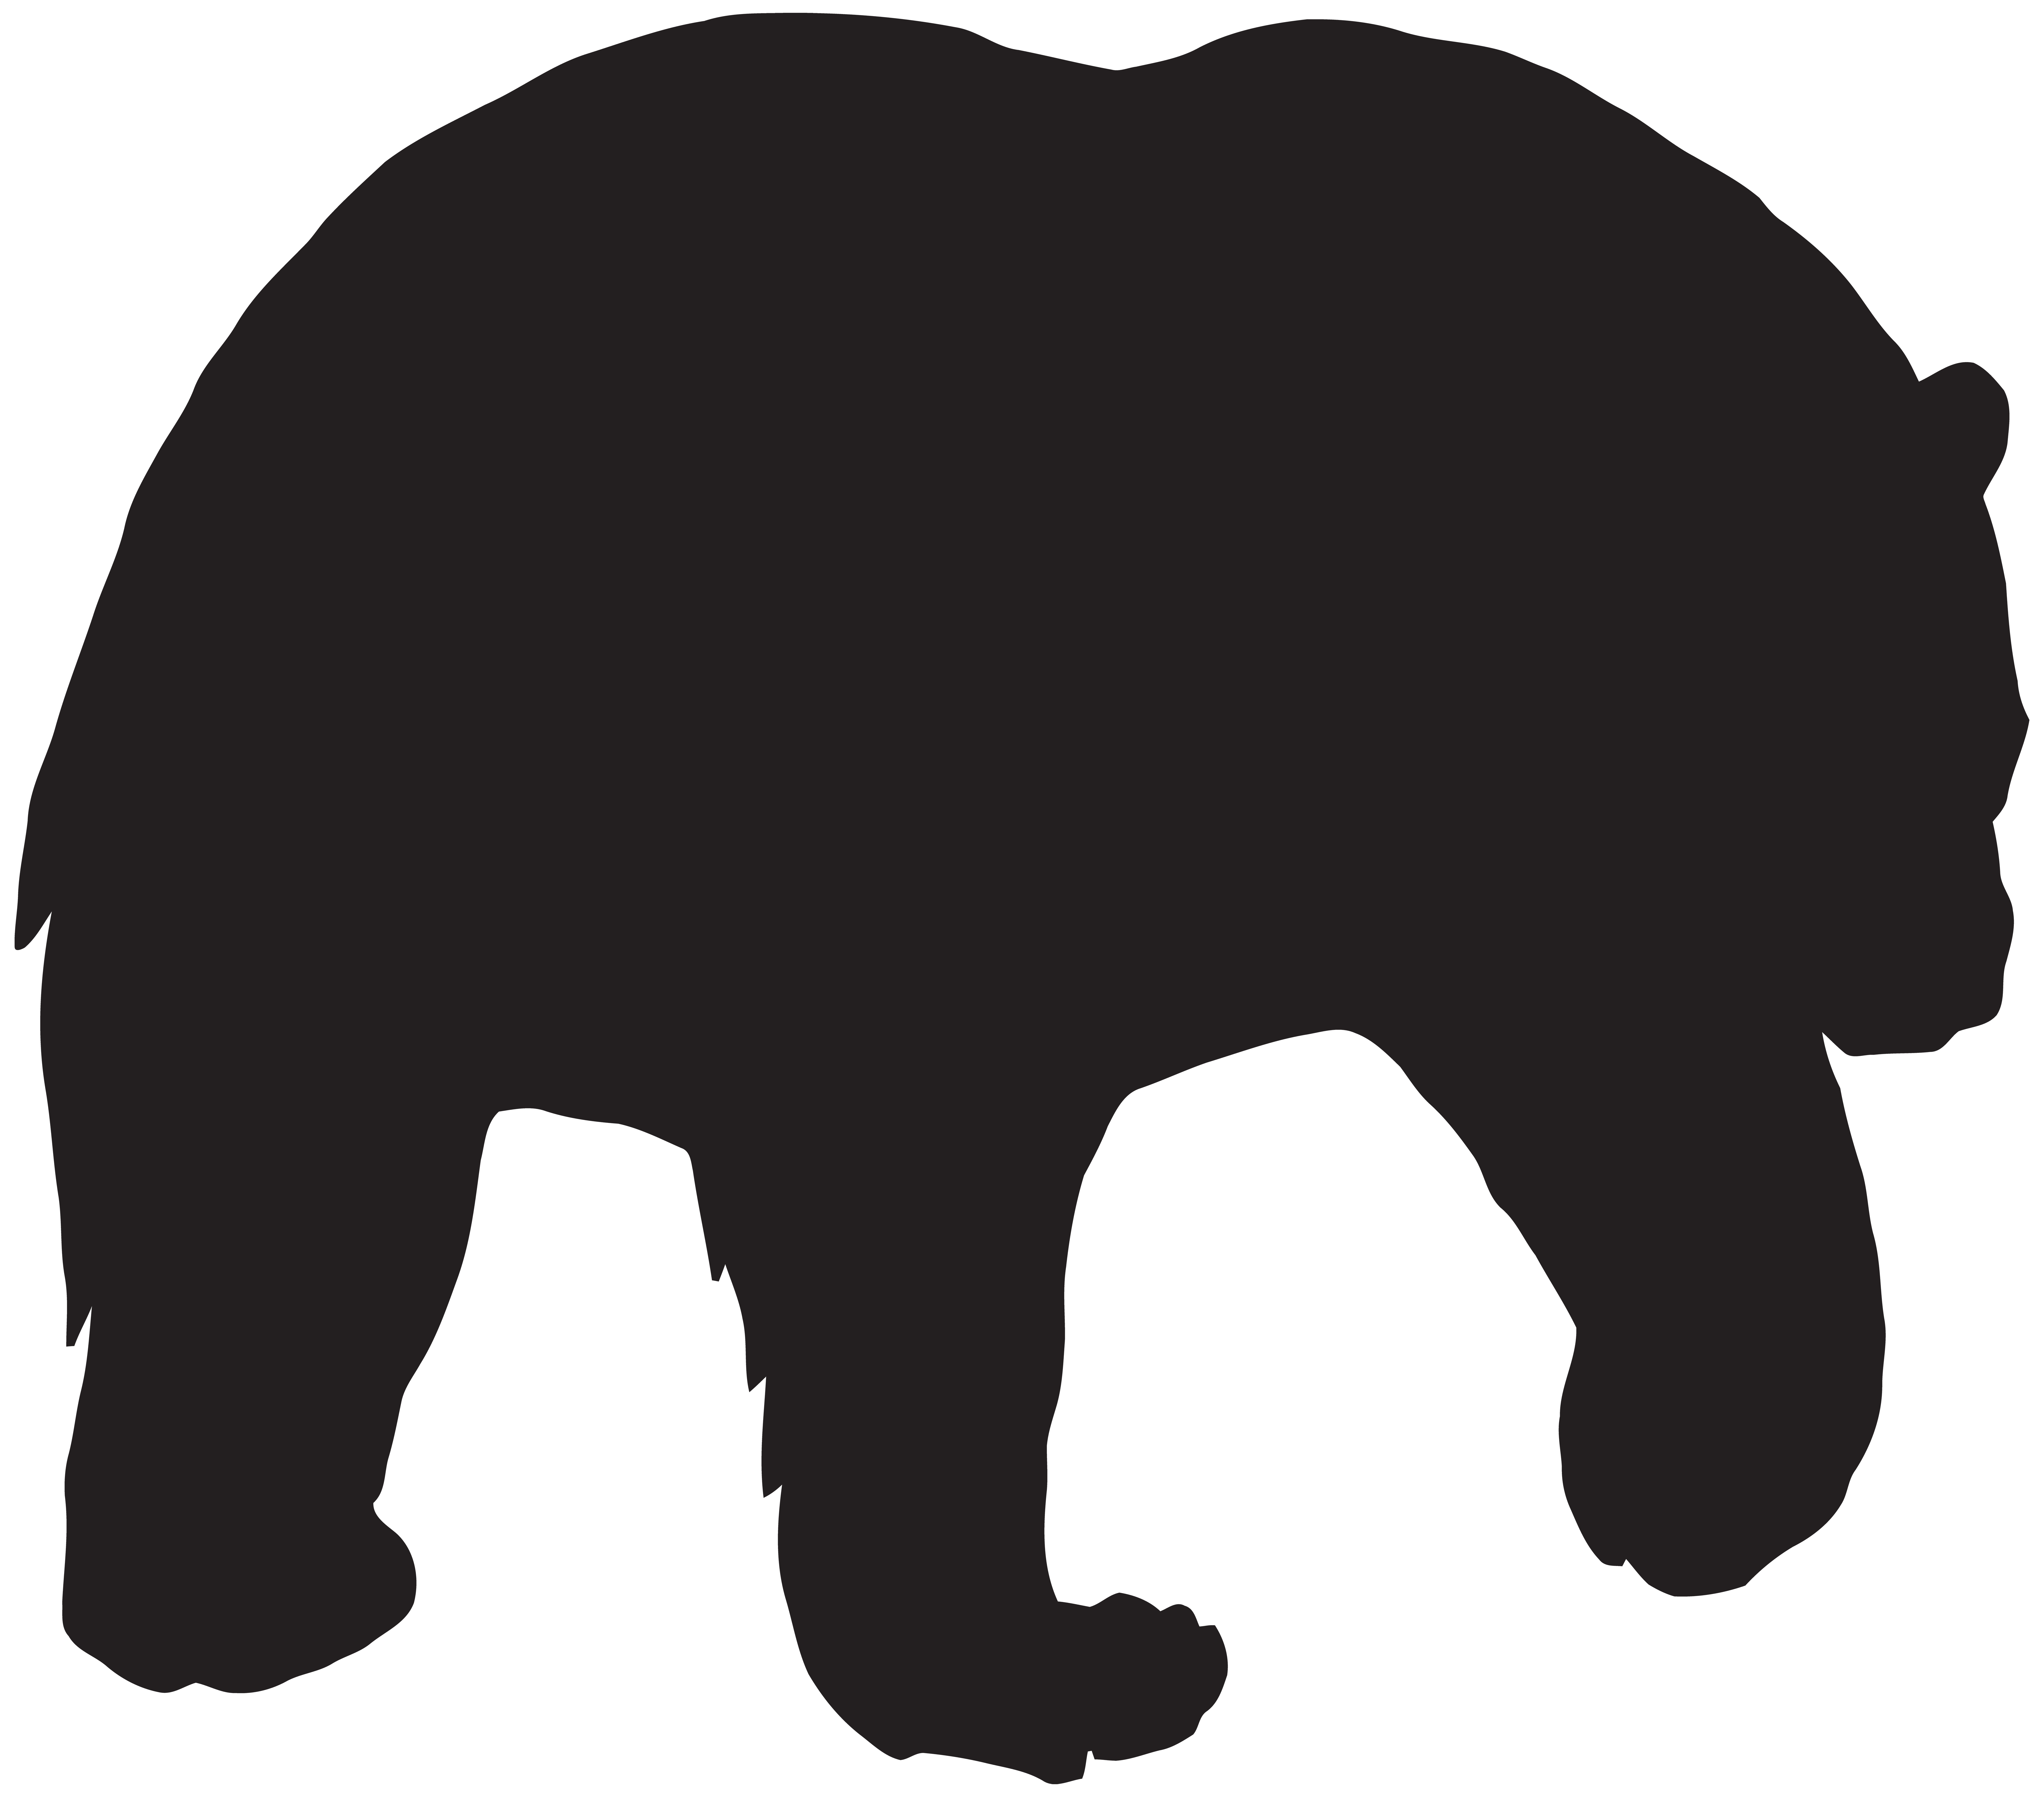 image free library Png clip art image. Bear silhouette clipart